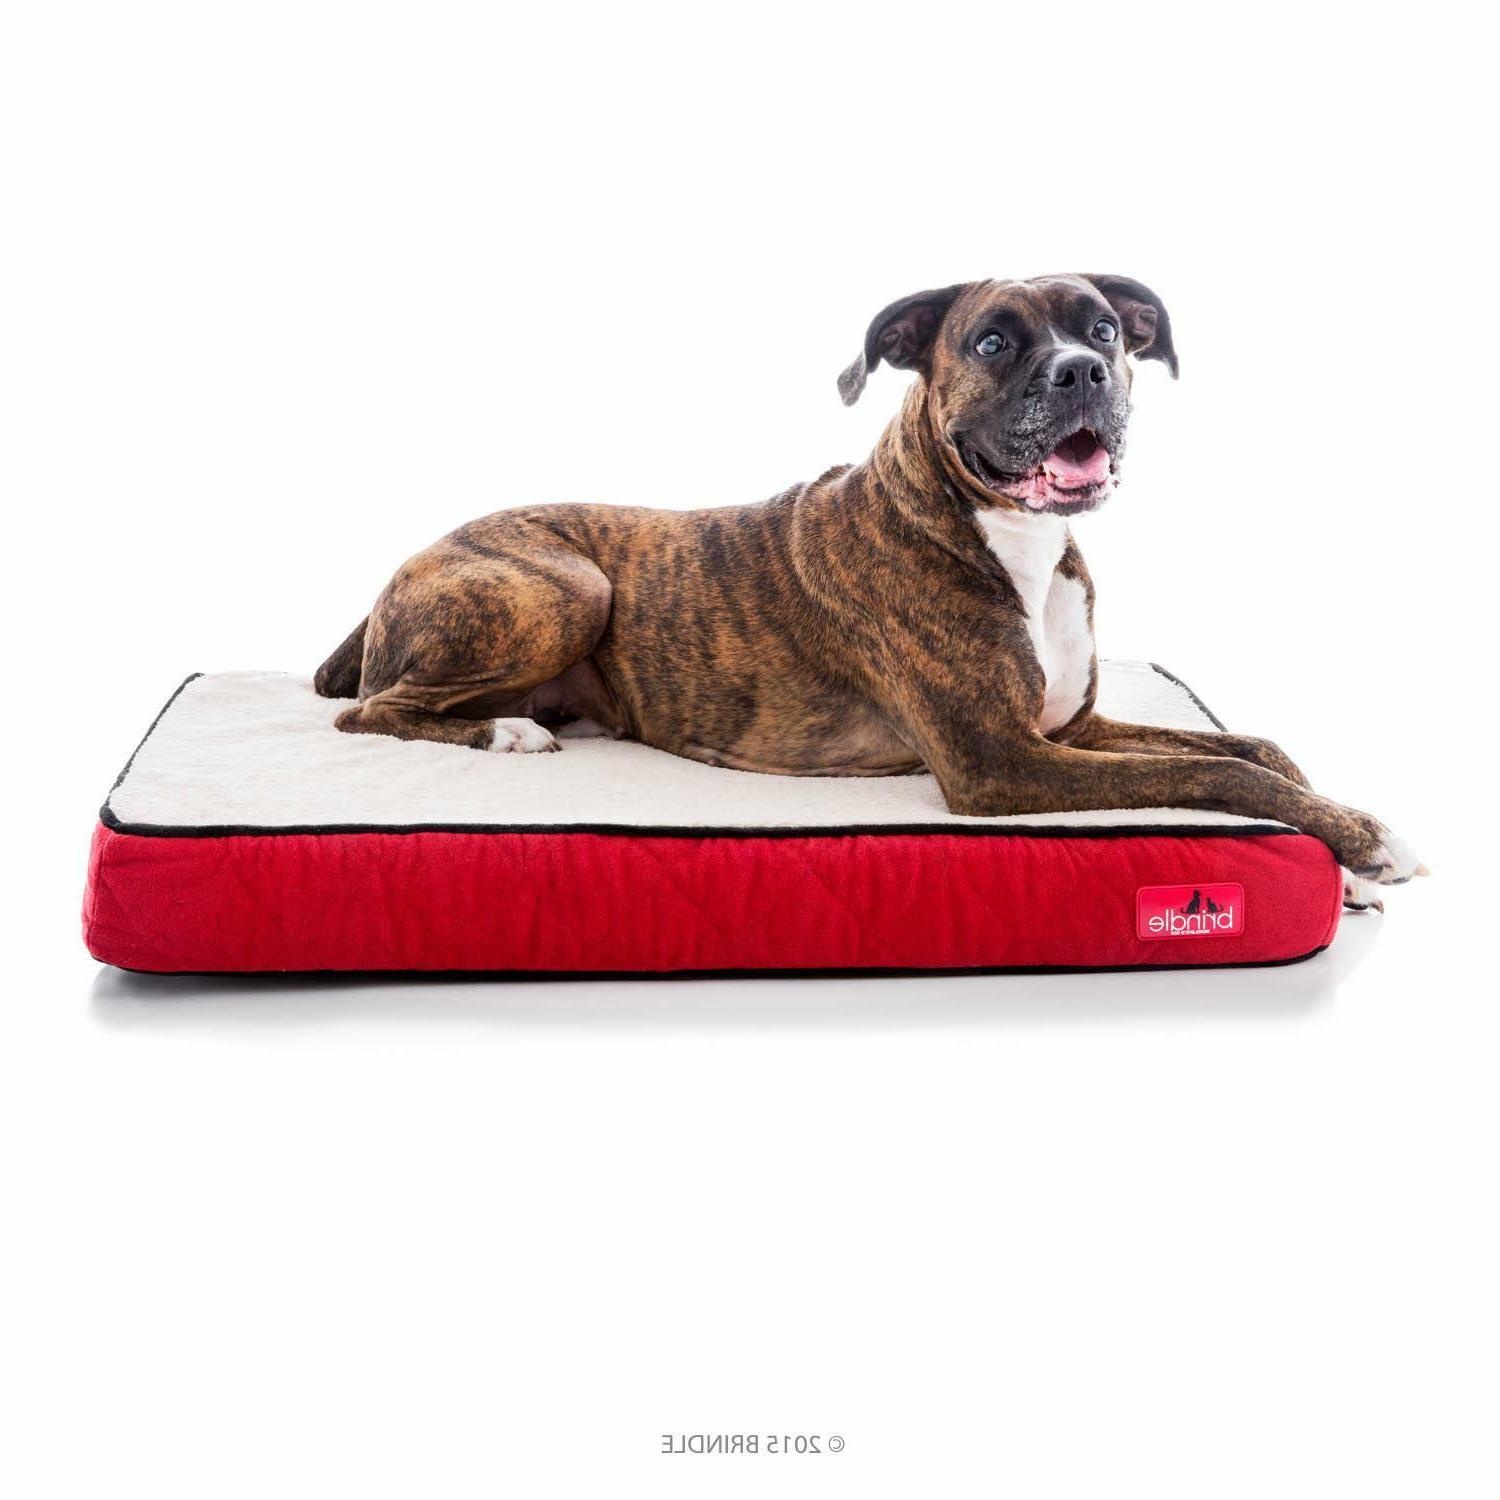 4 inch orthopedic memory foam dog bed